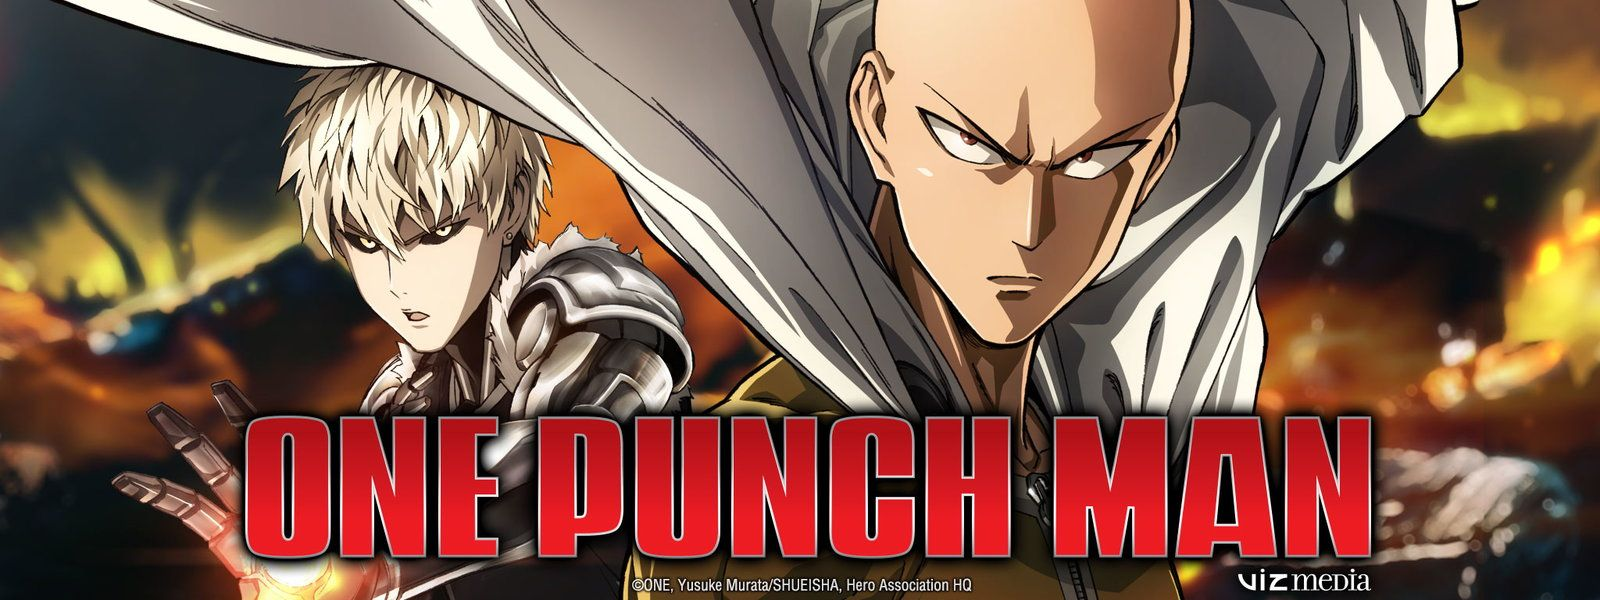 Neon Alley One Punch Man Streaming Anime Episodes One Punch Man Episodes One Punch Man One Punch